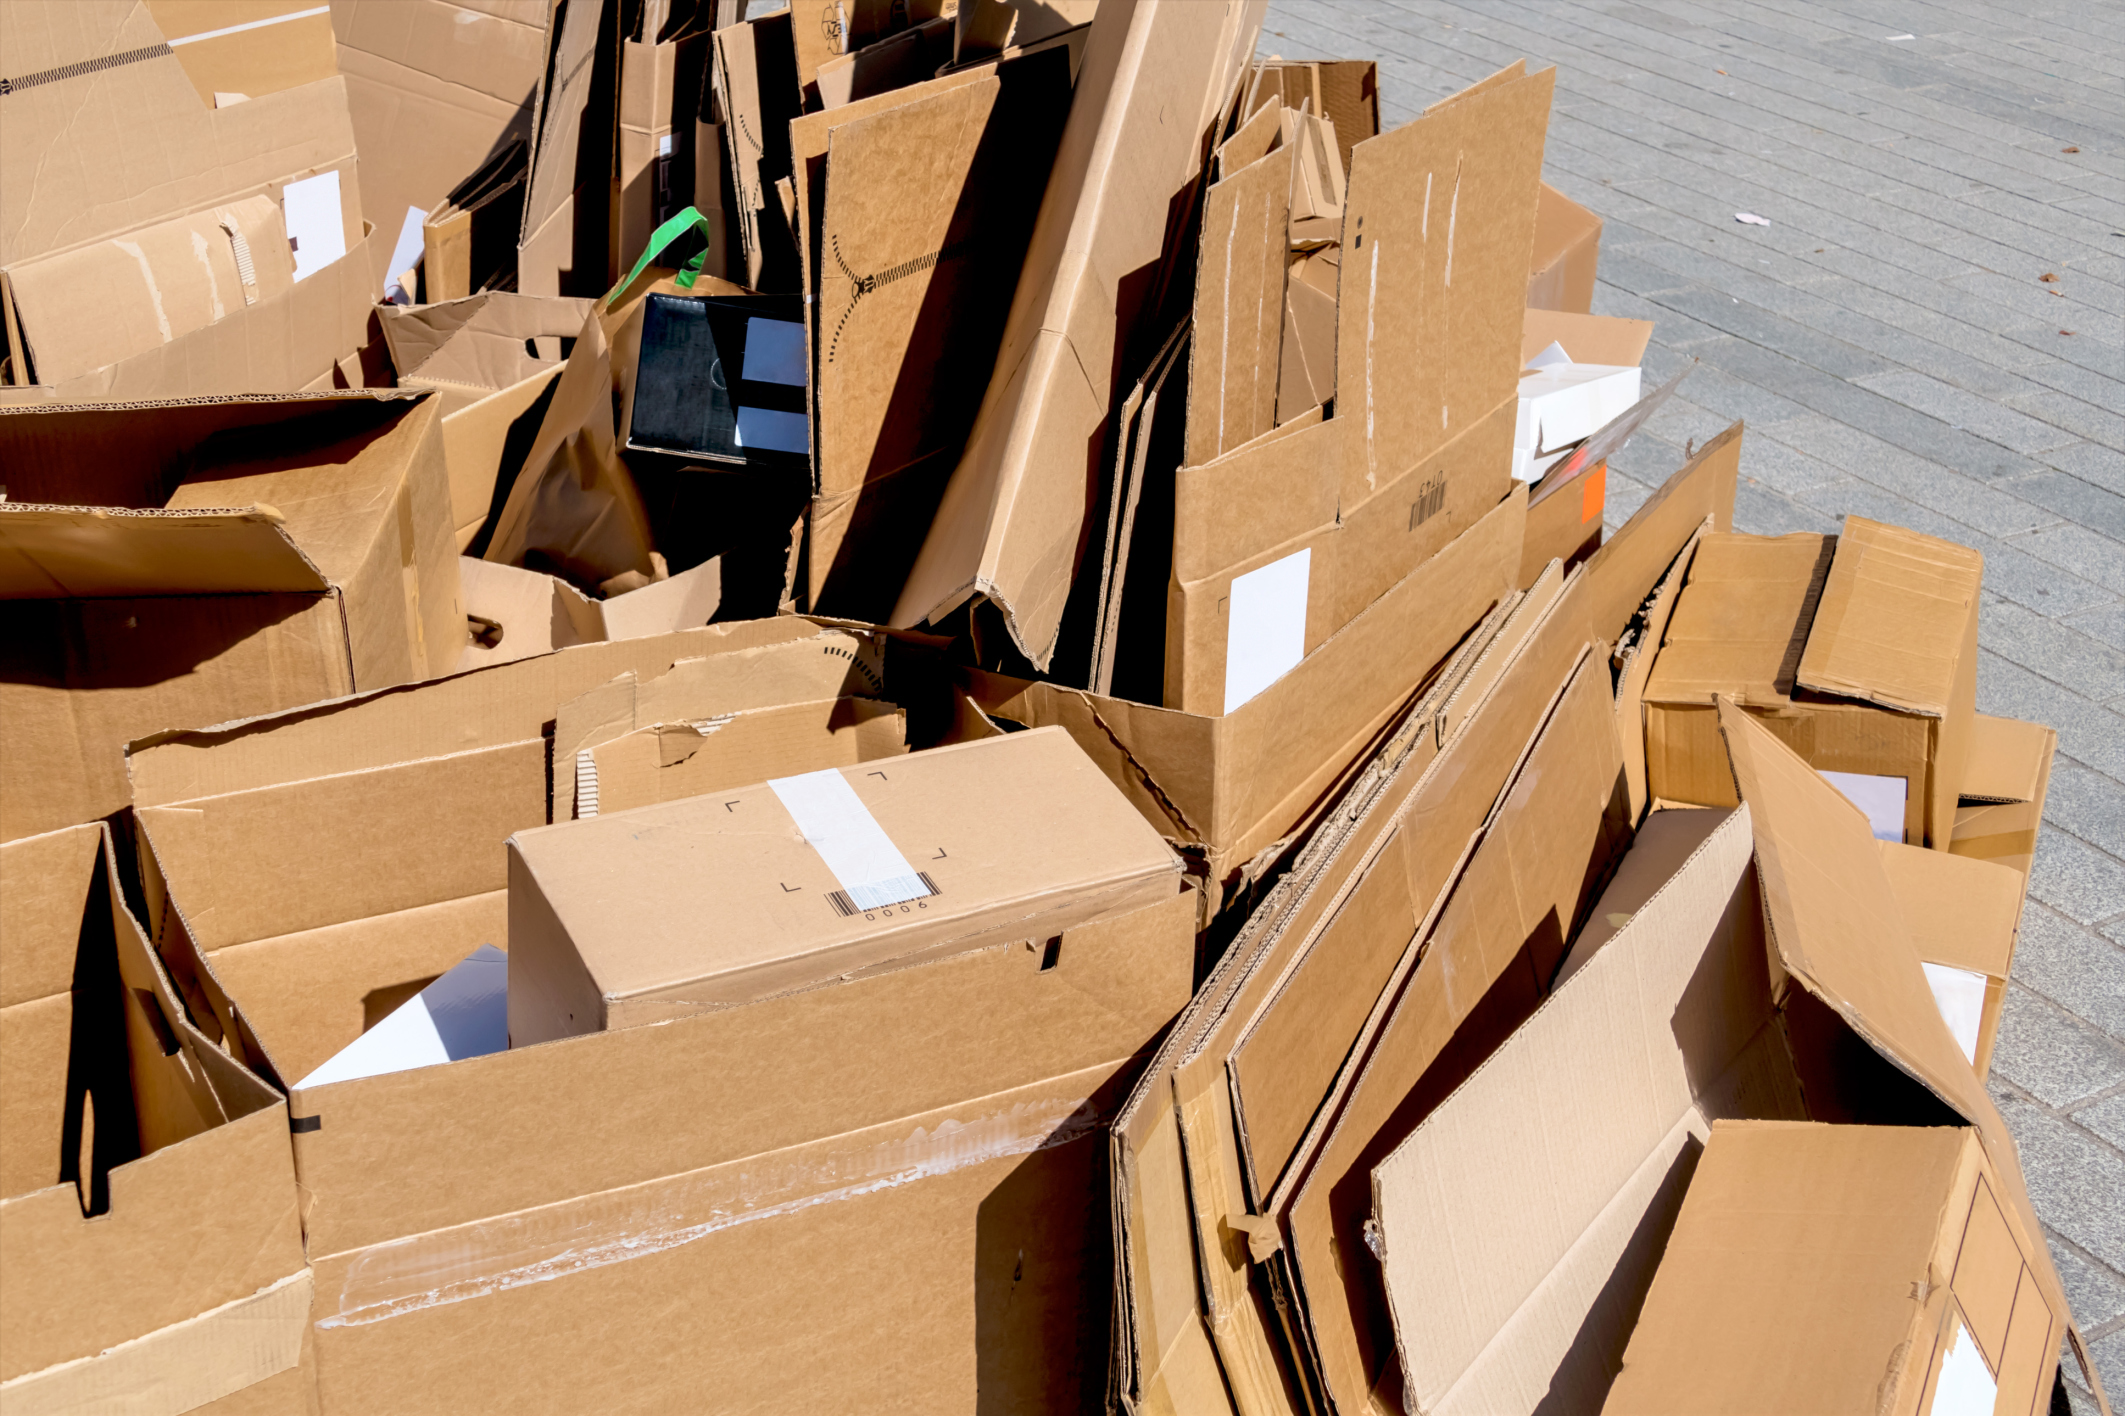 how to cut down on packaging waste